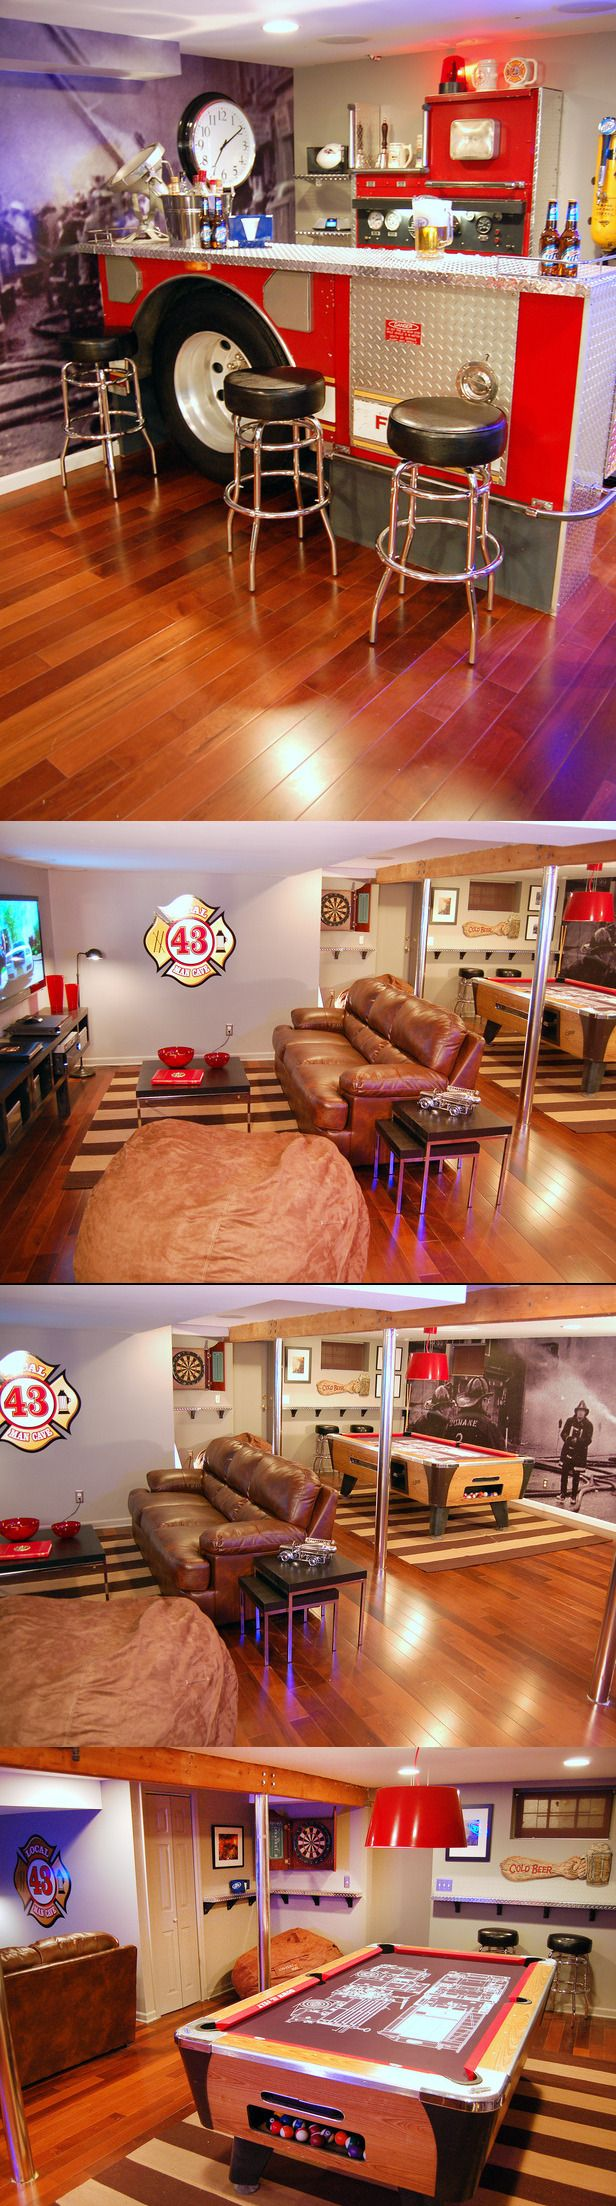 Man Cave Decor Jobs : Images about man cave ideas firefighter on